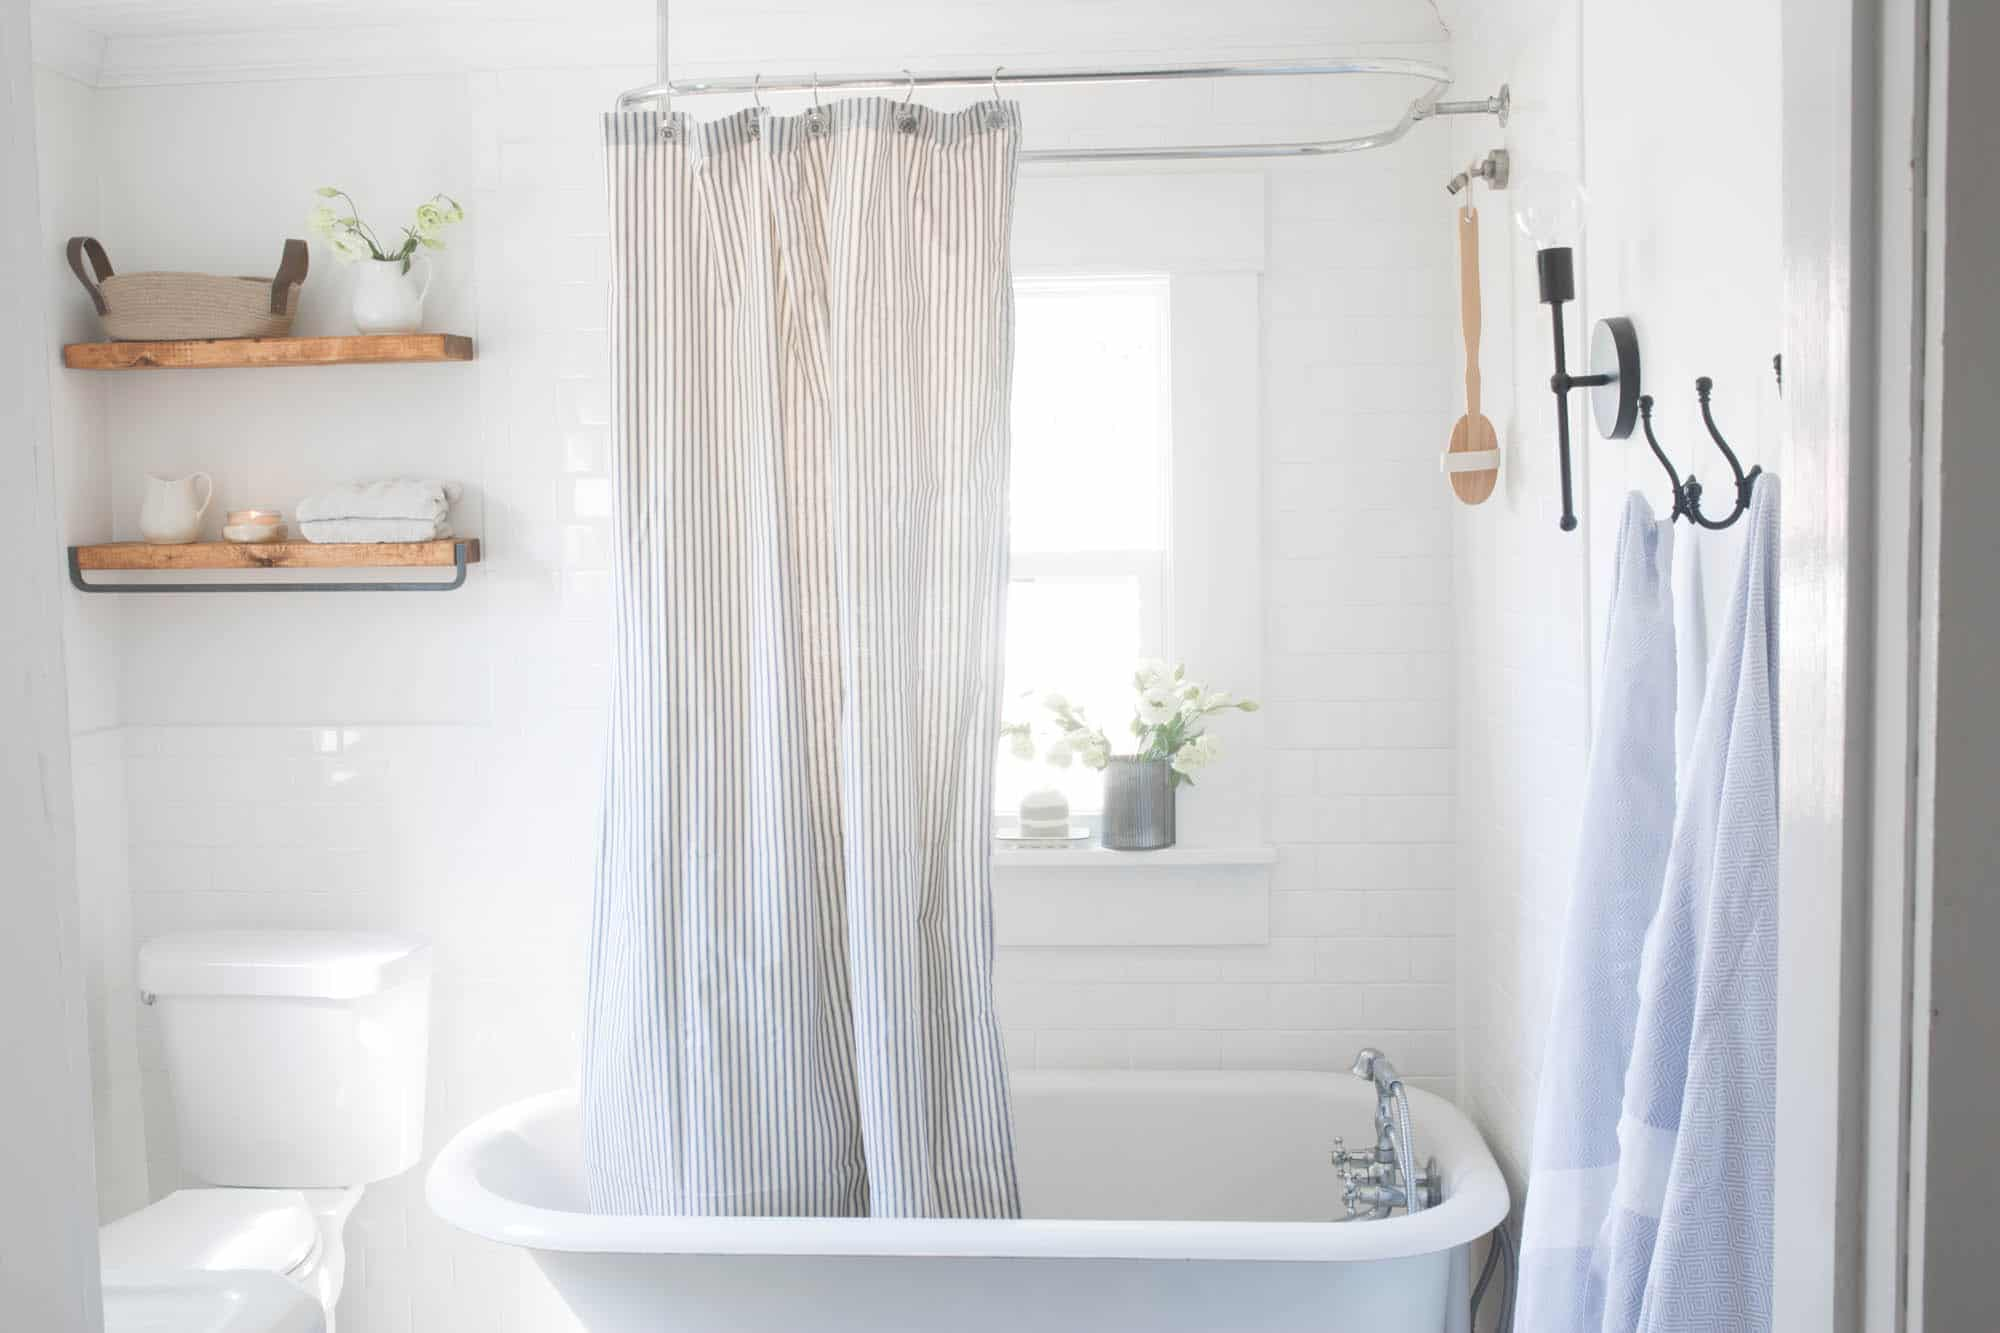 Farmhouse Bathroom Decor- Floating Shelves, Clawfoot Tub and Ironstone